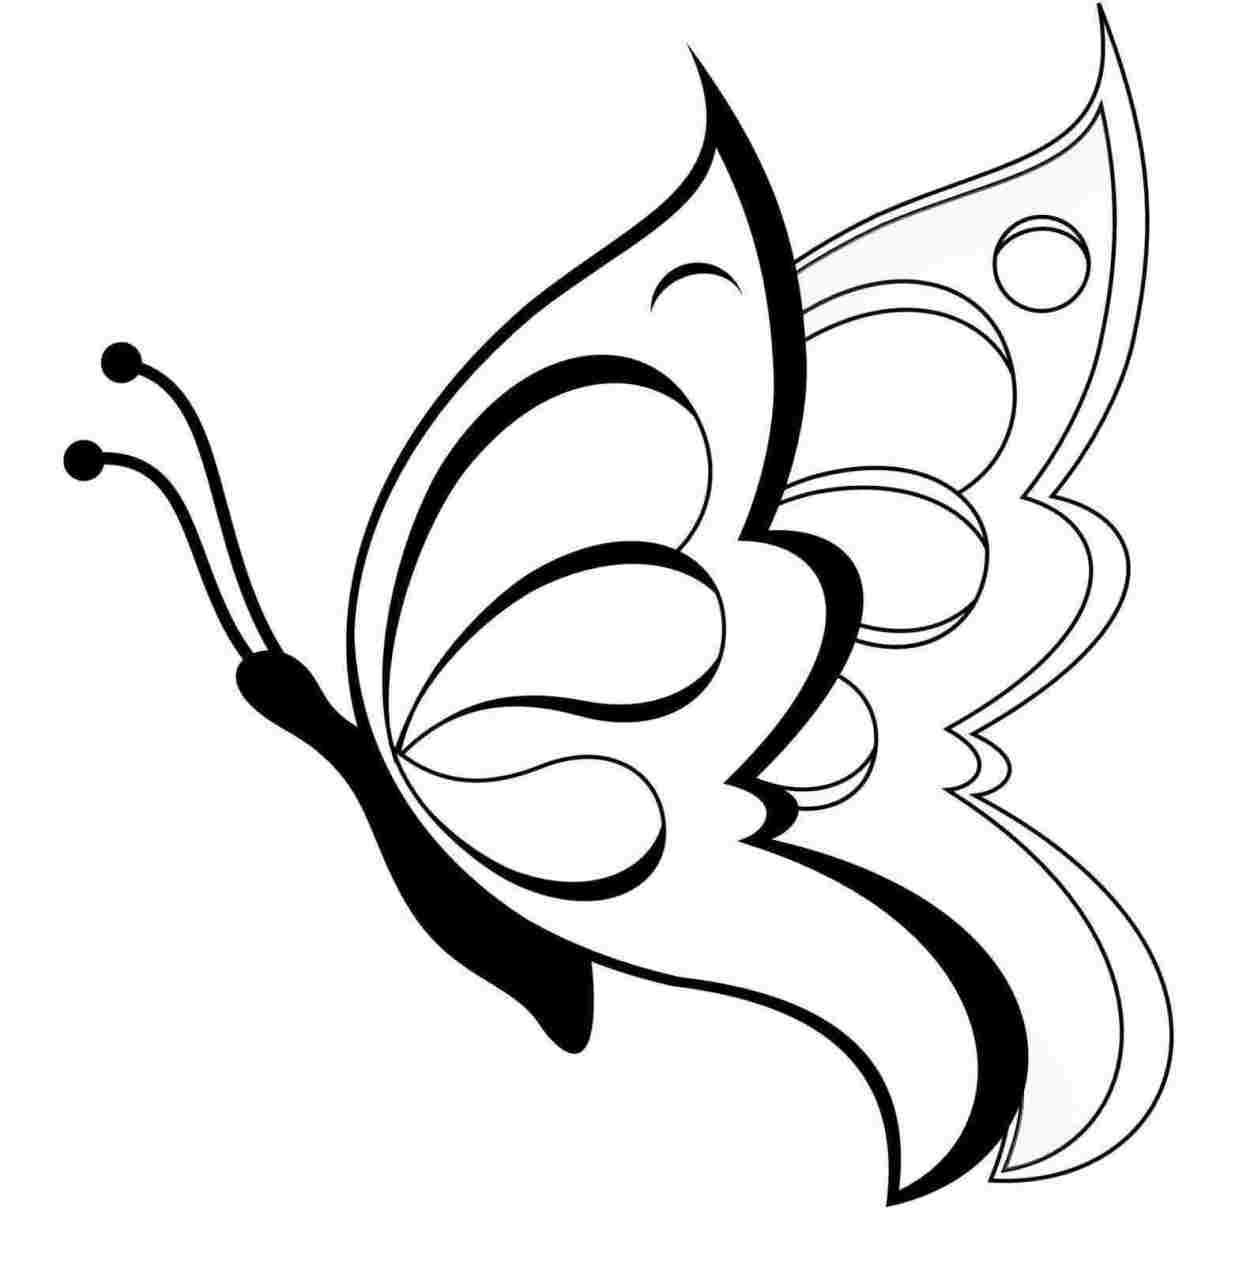 On Rhclipartlibrarycom Tribal Drawing Cool Flower Pretty Flower Tribal Drawing Easy Butterfly Drawing Butterfly Sketch Butterfly Drawing